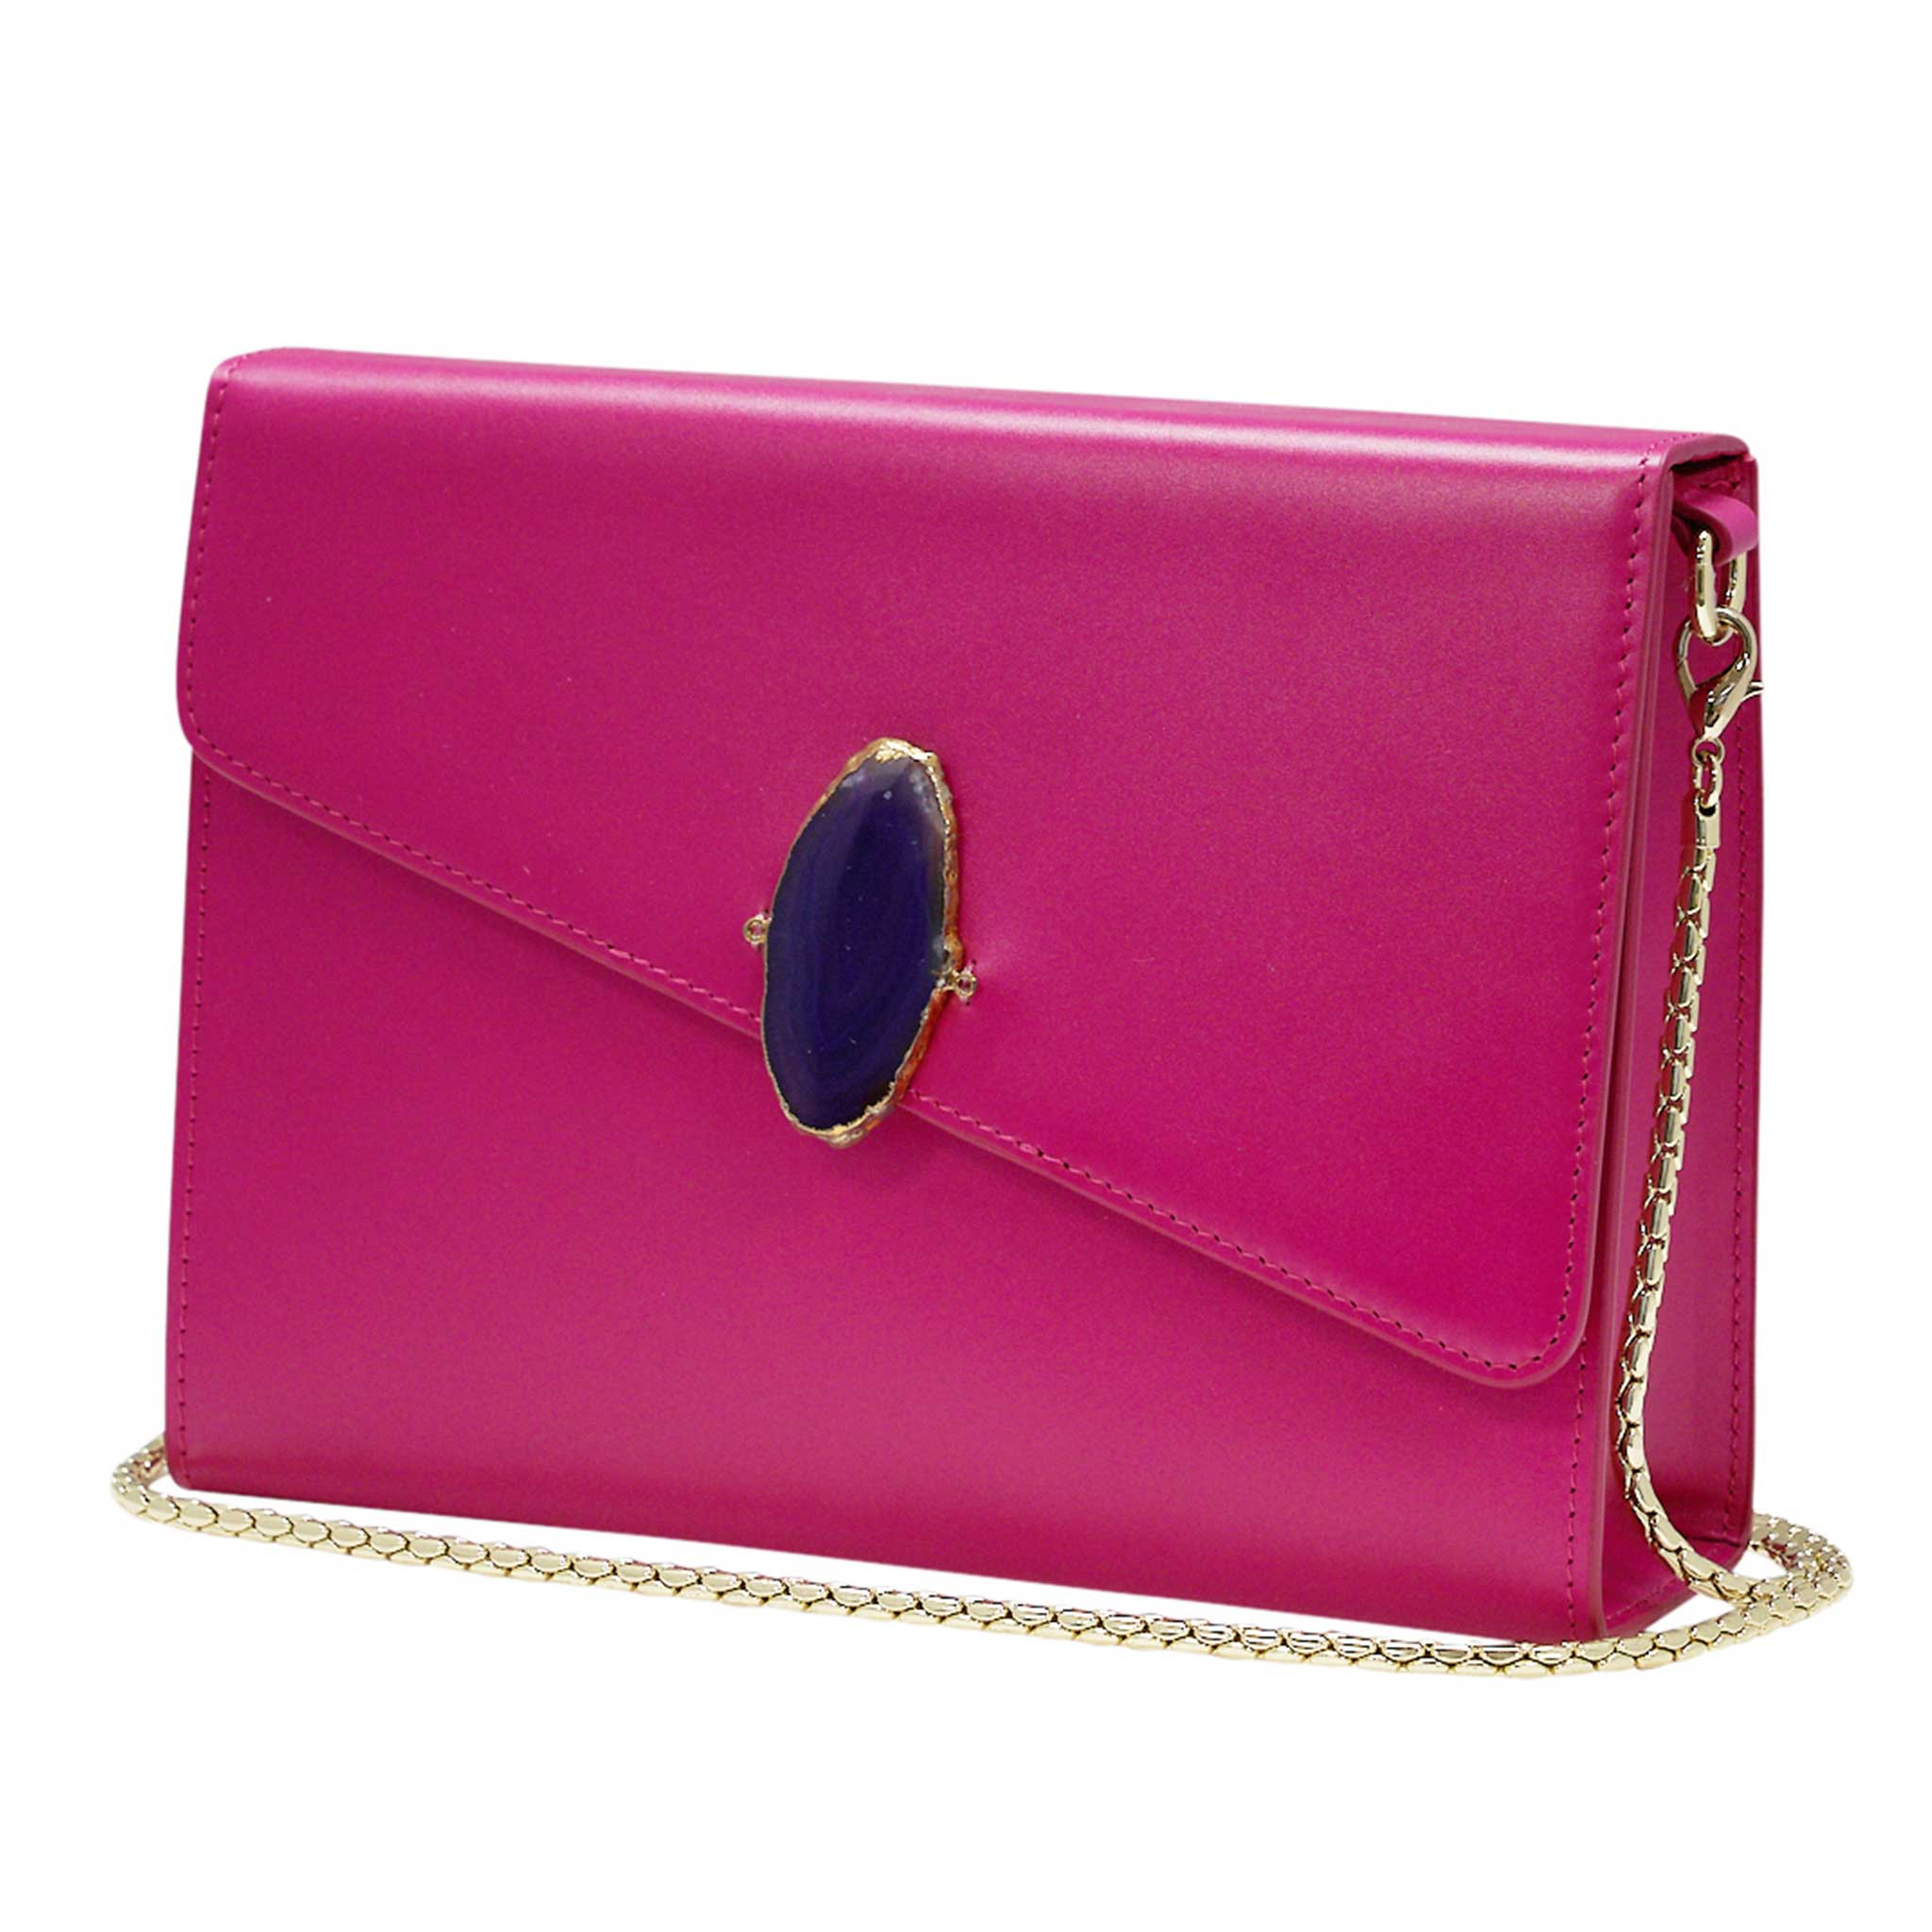 LOVED BAG - PINK RUBY LEATHER WITH PURPLE AGATE - 1.01.006.002